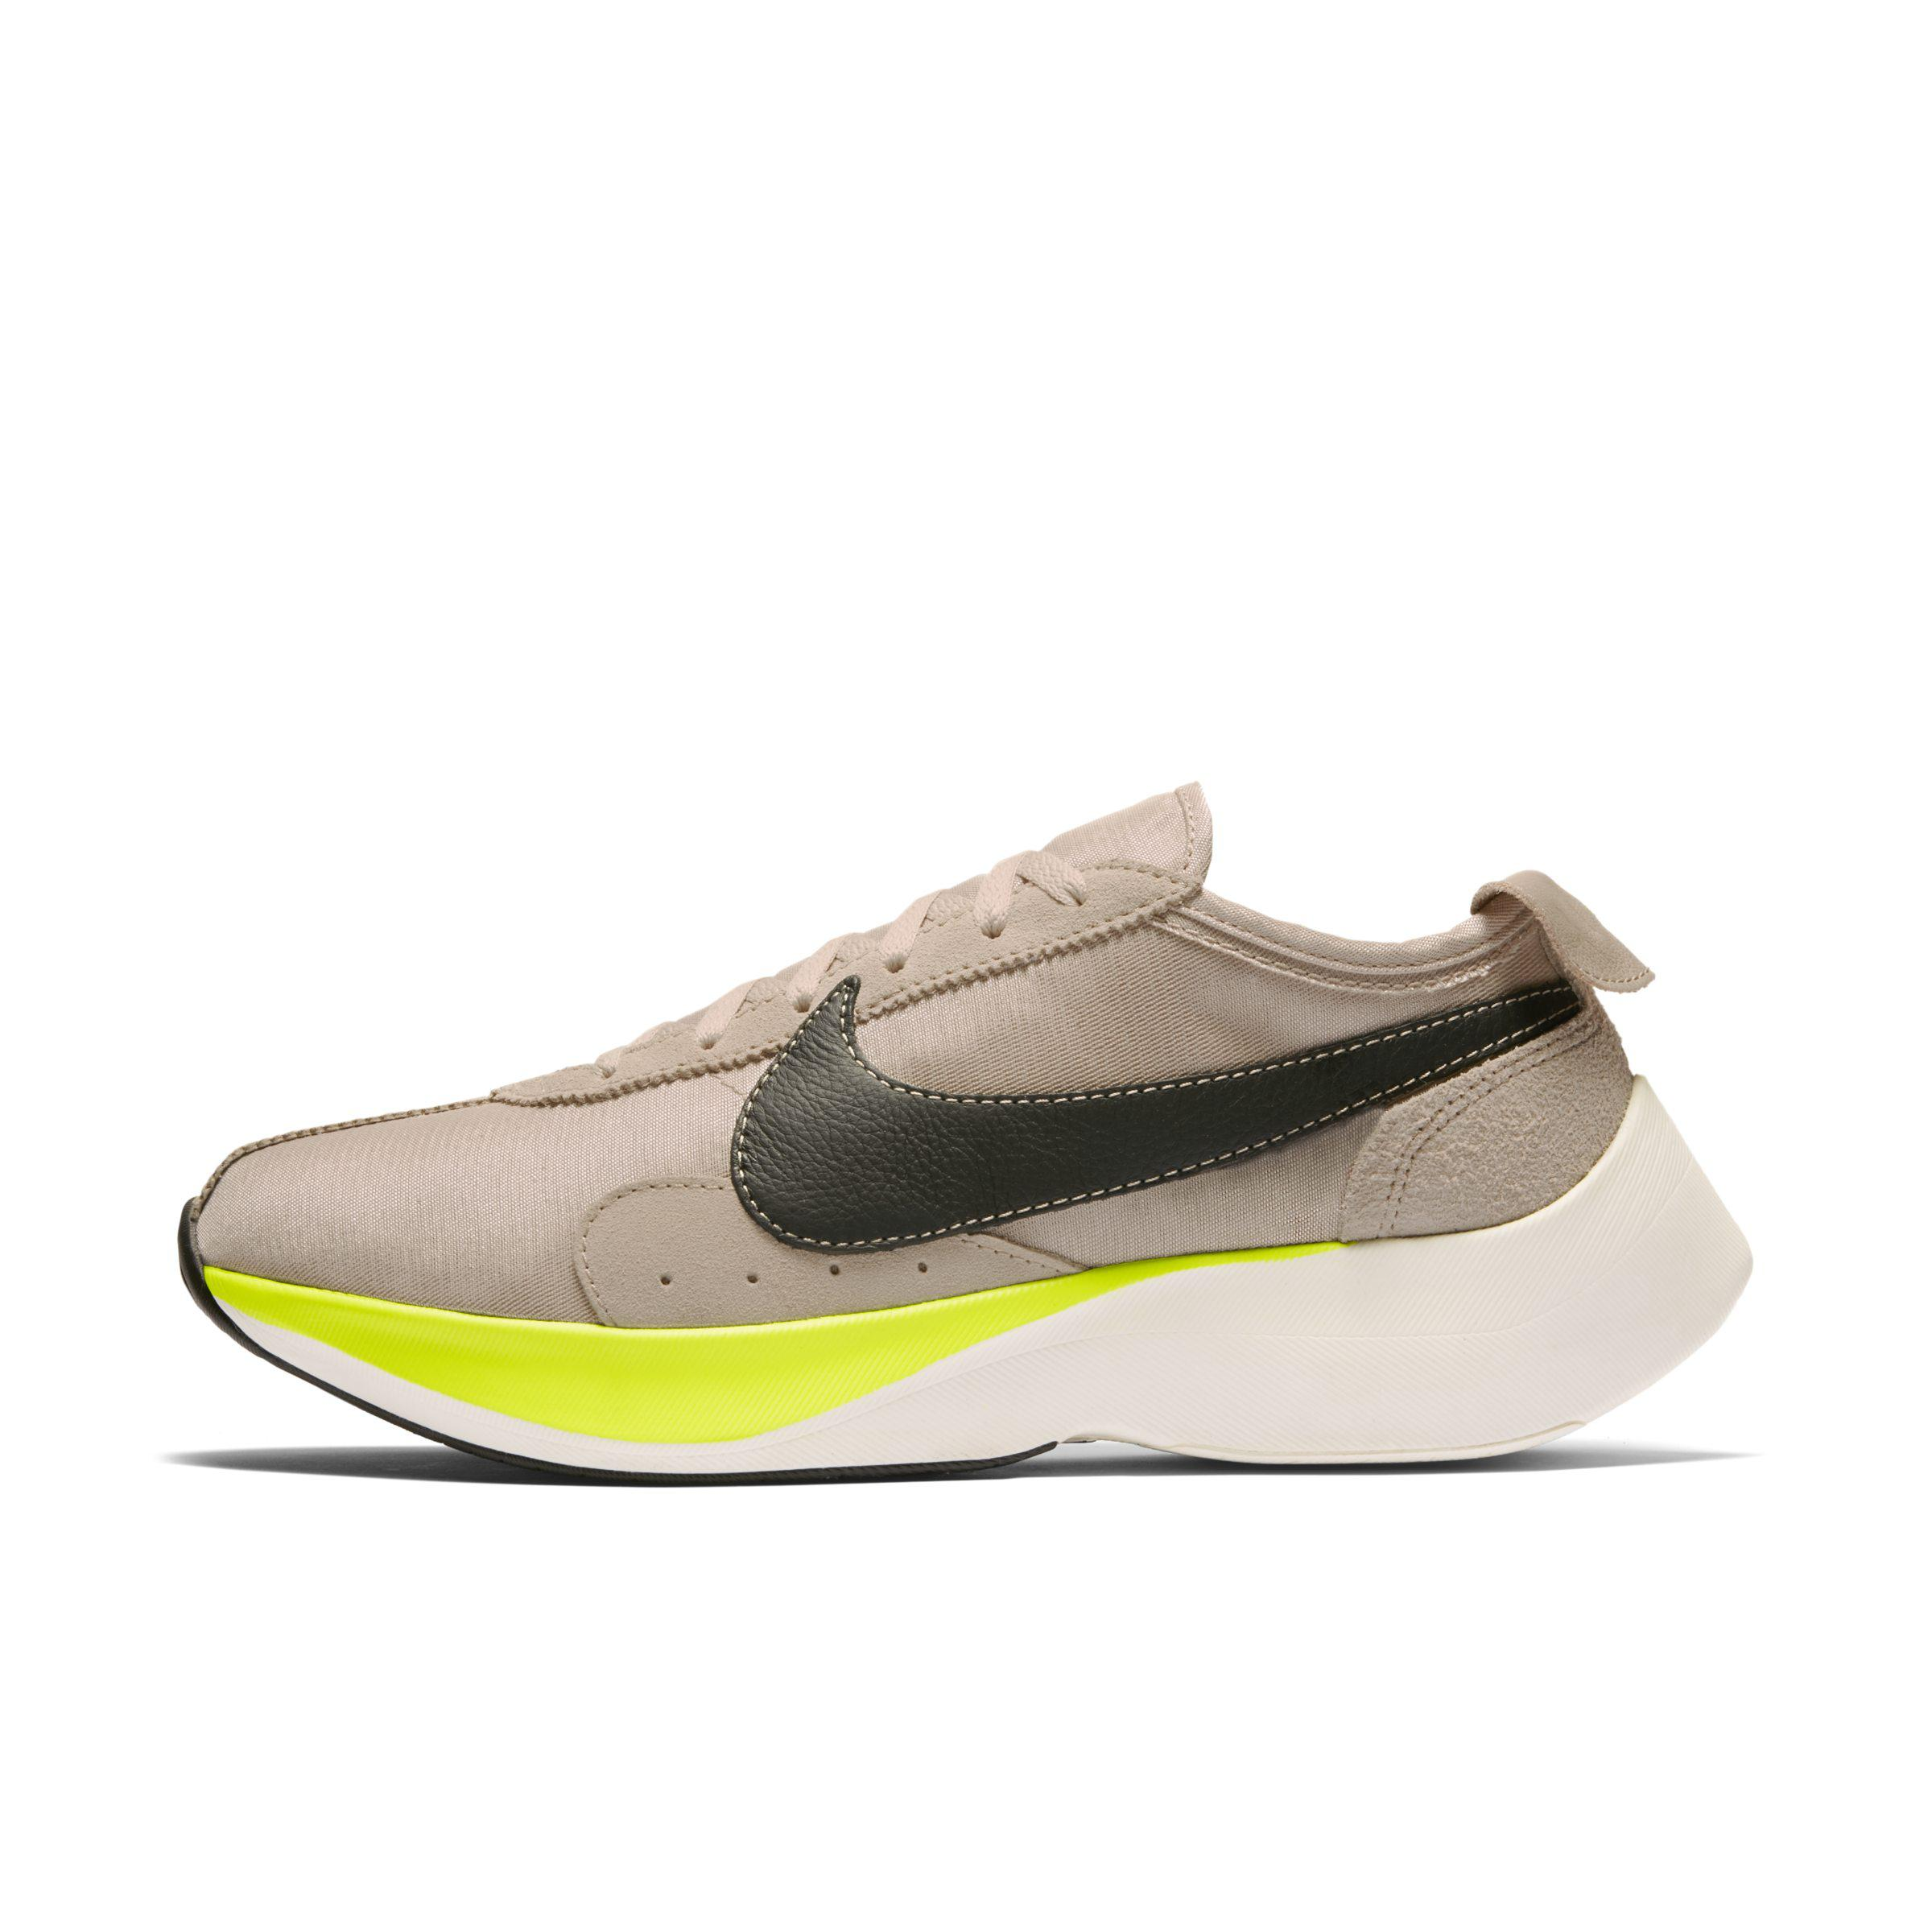 ... cheaper fea0e 008d5 Nike Moon Racer Shoe in Brown for Men - Save  30.232558139534888% ... 32d049120